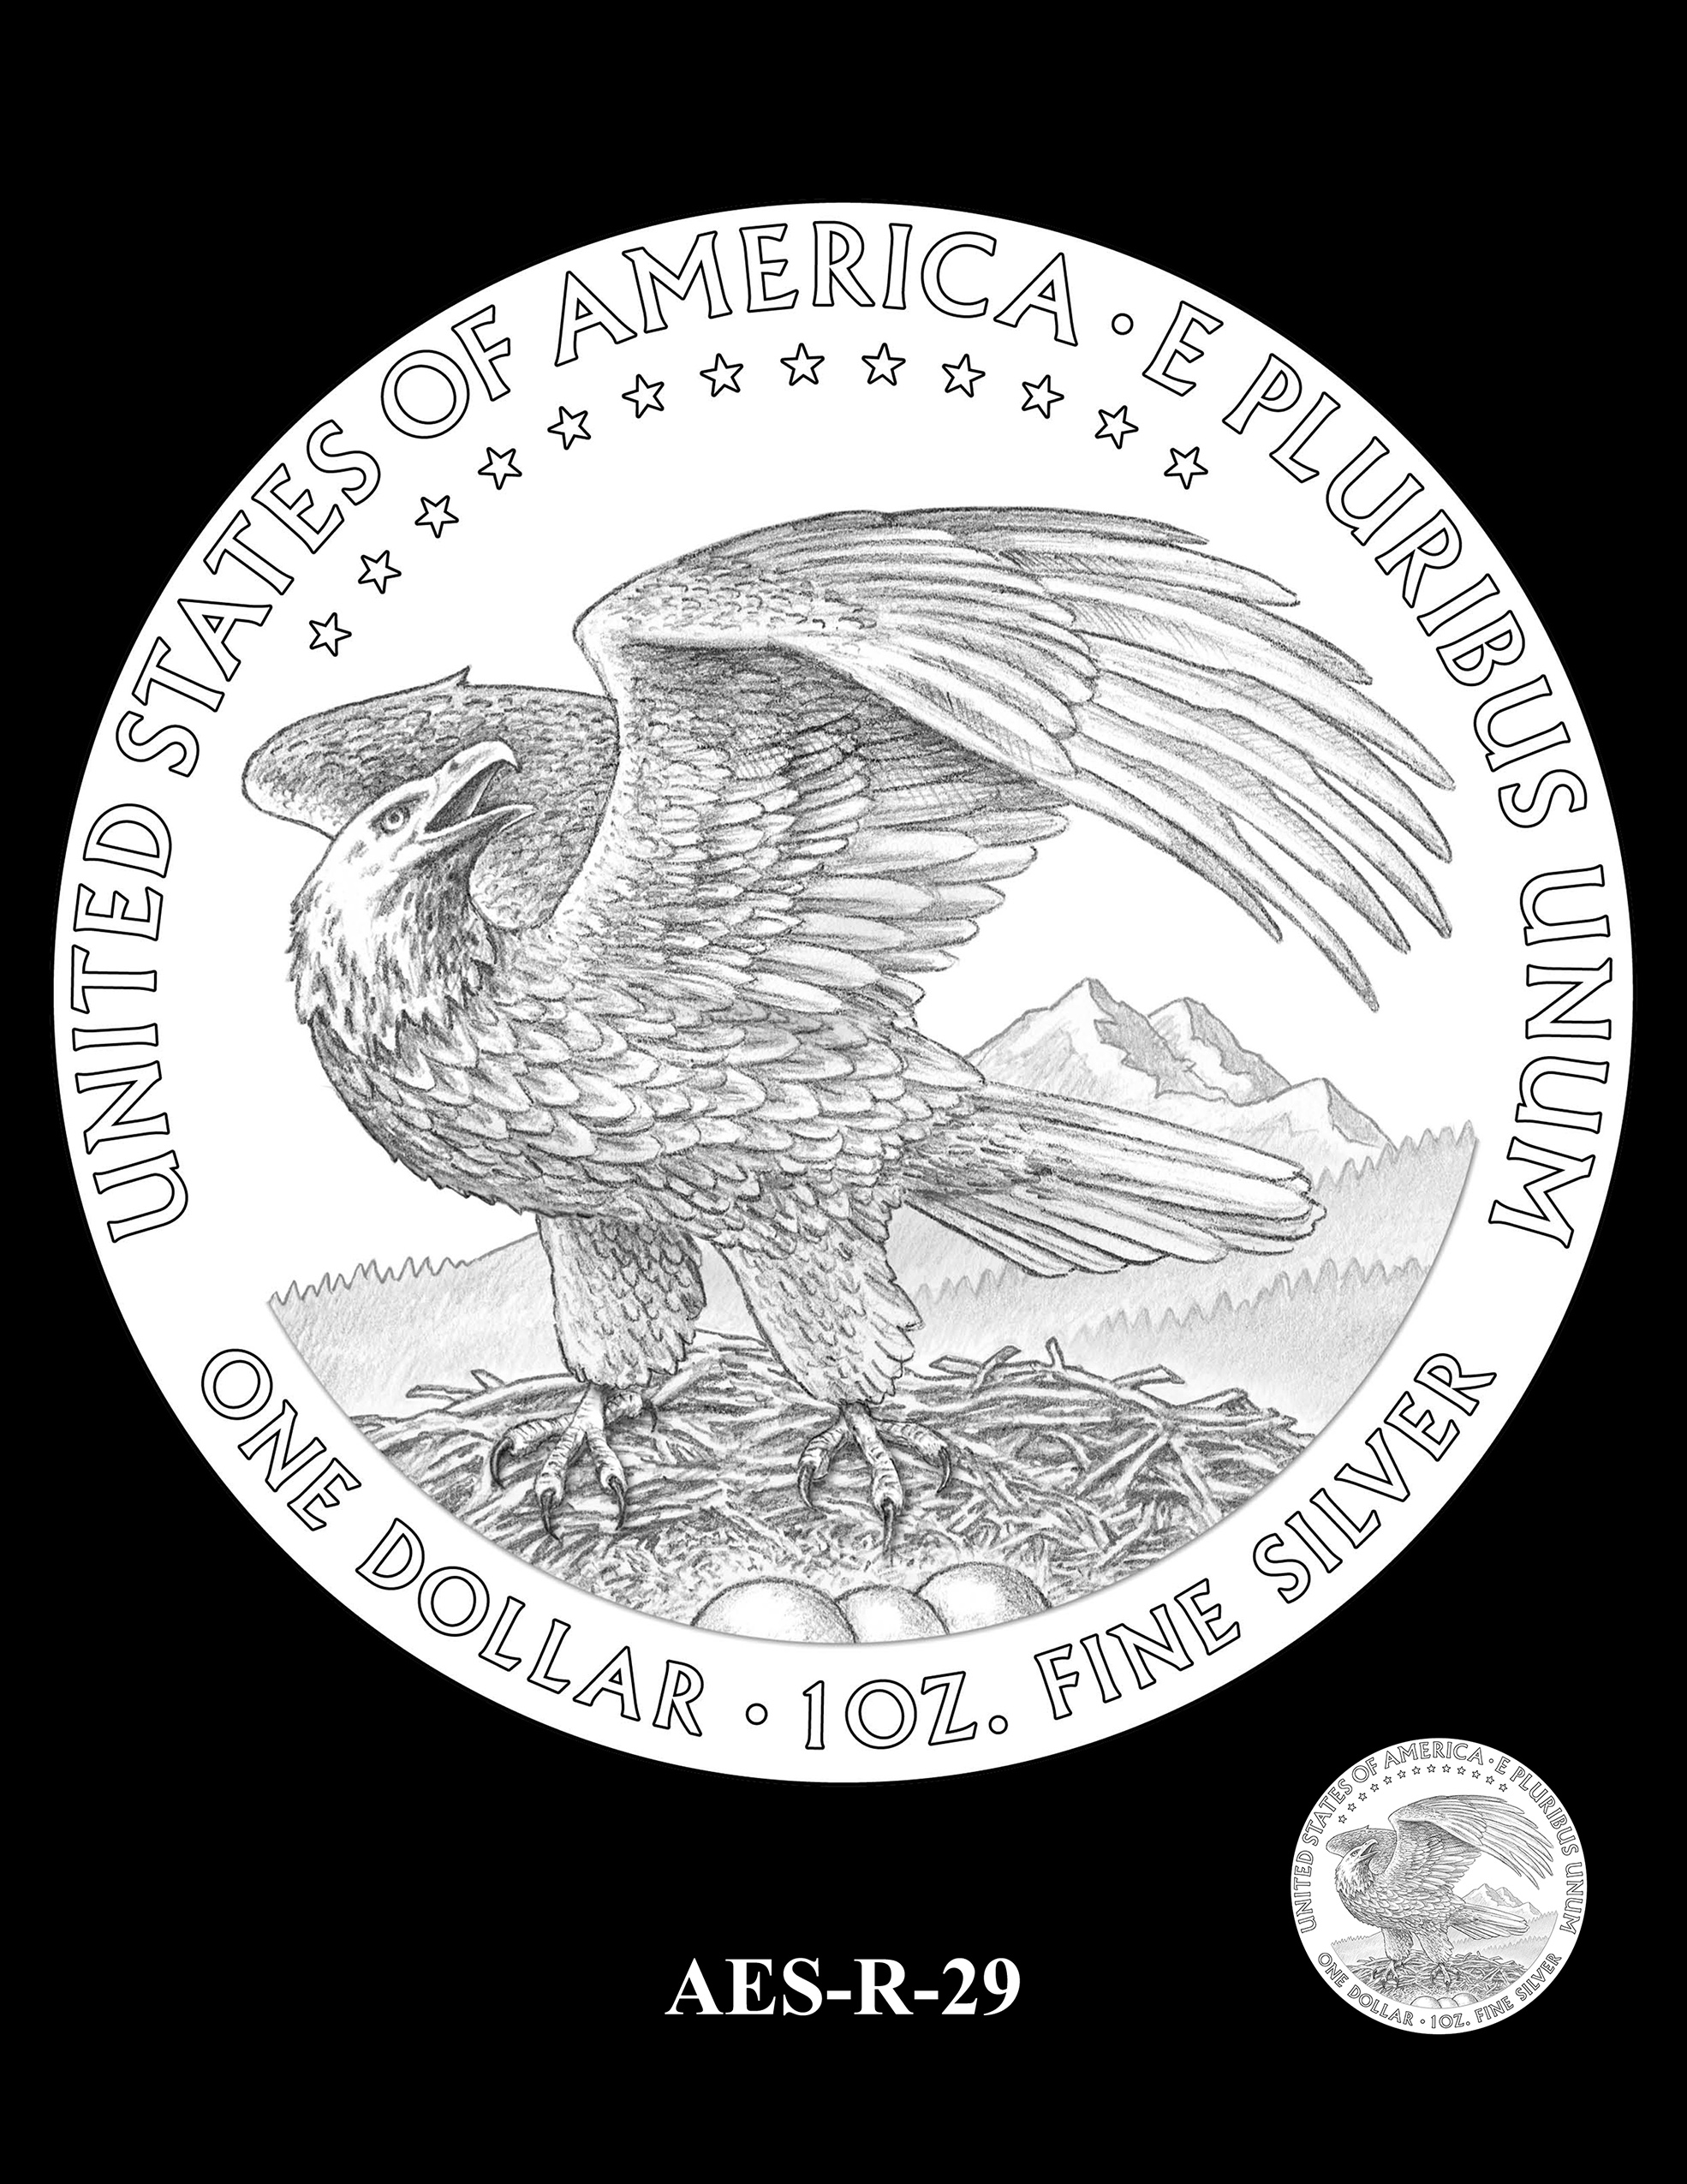 AES-R-29 -- American Eagle Proof and Bullion Silver Coin - Reverse